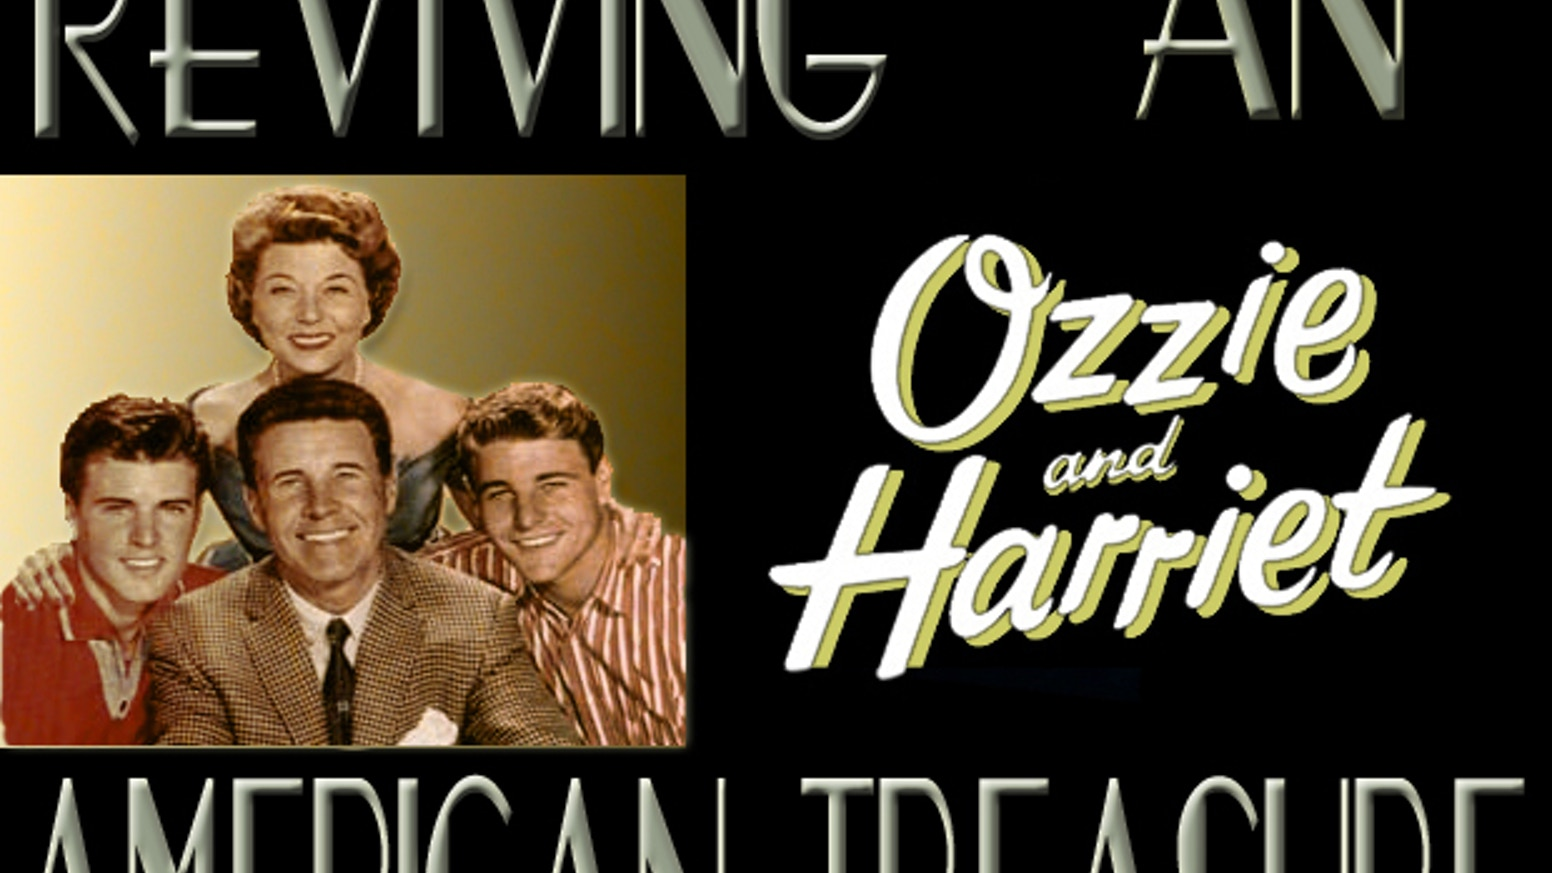 Ozzie and Harriet: Reviving An American Treasure by Sam Nelson